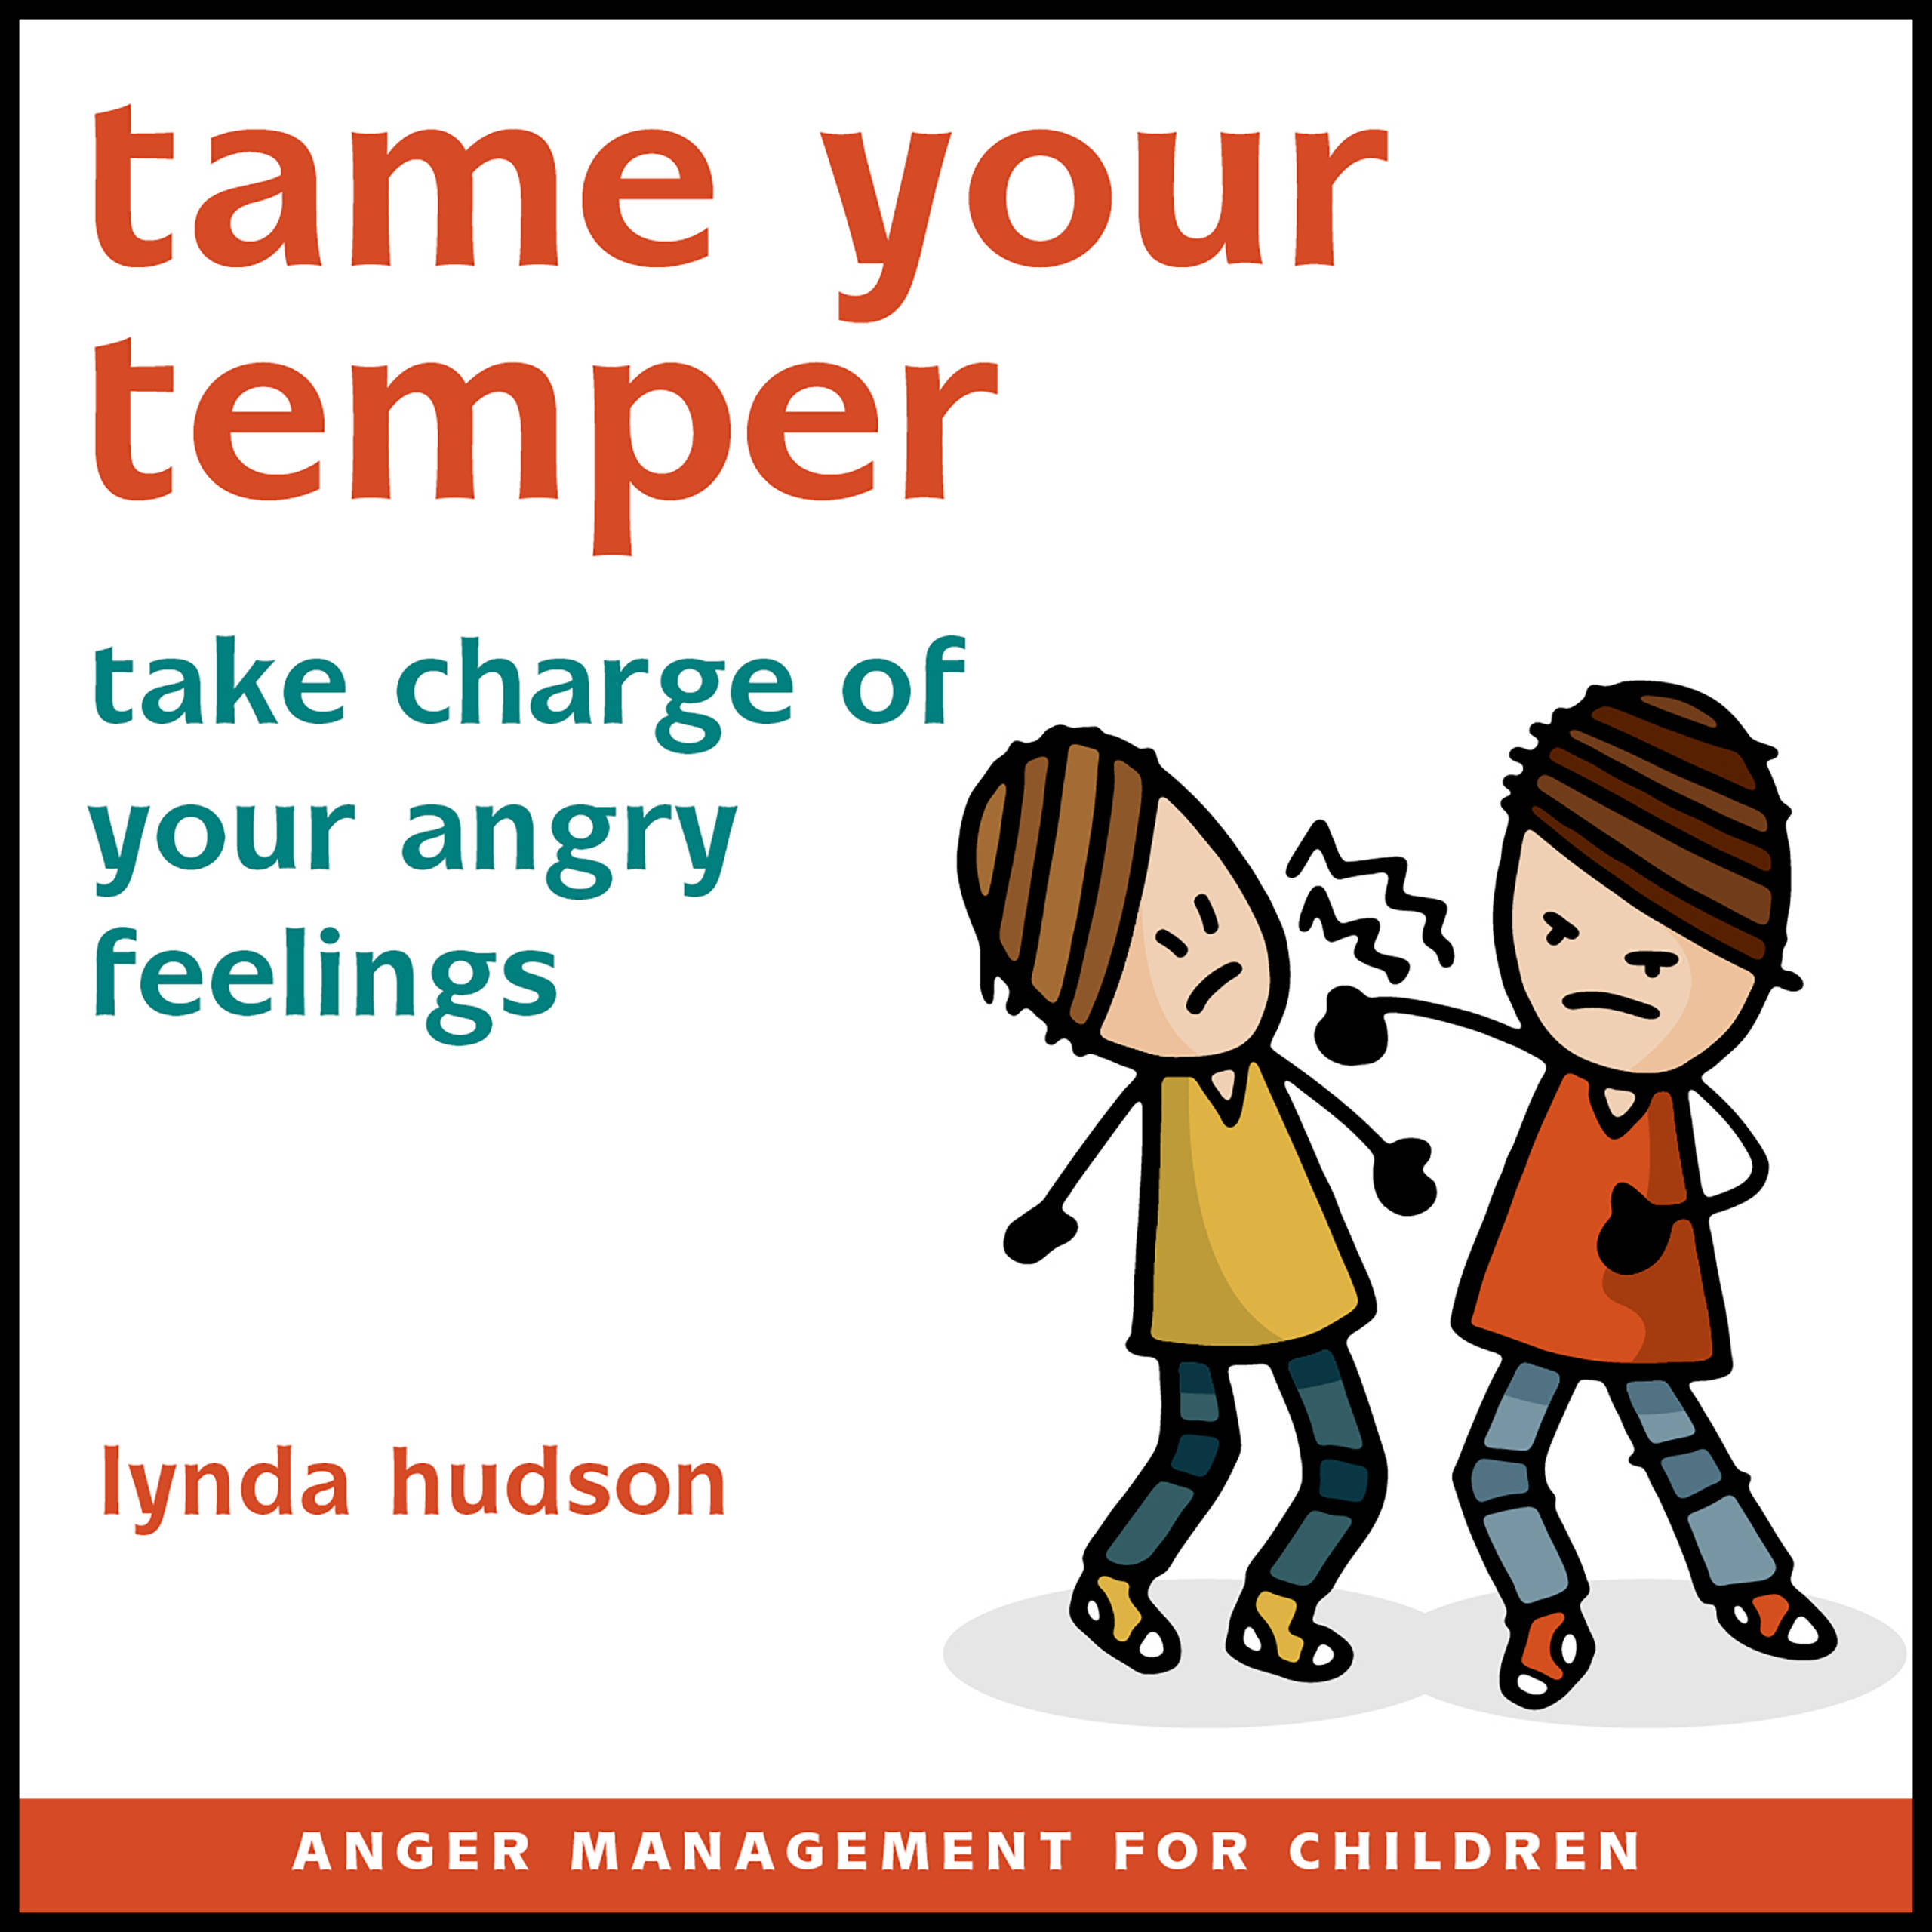 Tame your temper